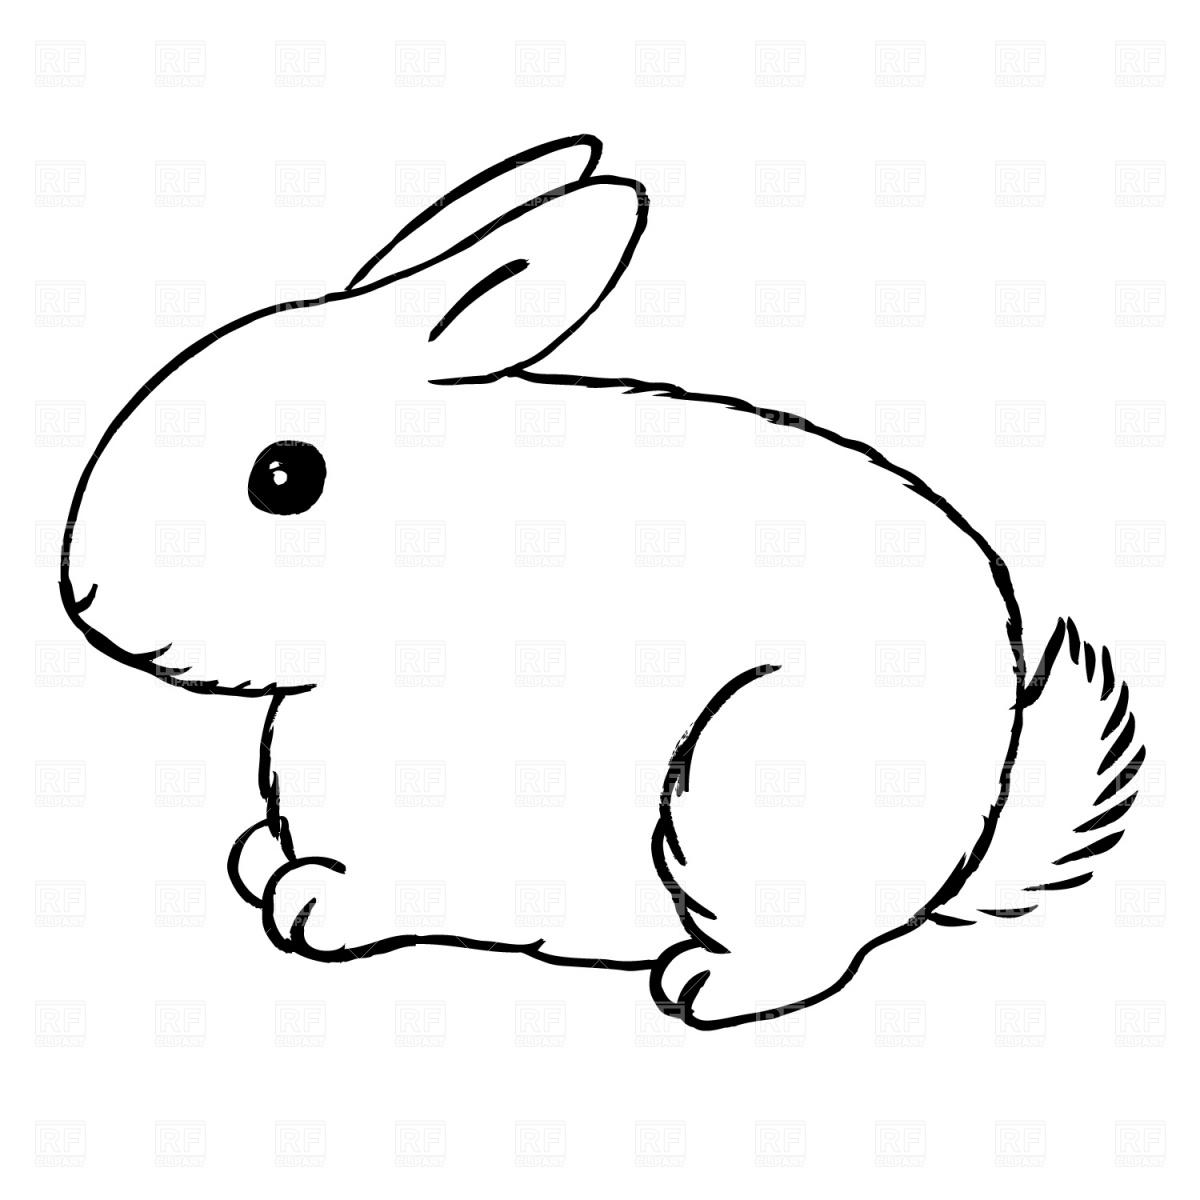 1200x1200 Bunny Images Clip Art Many Interesting Cliparts